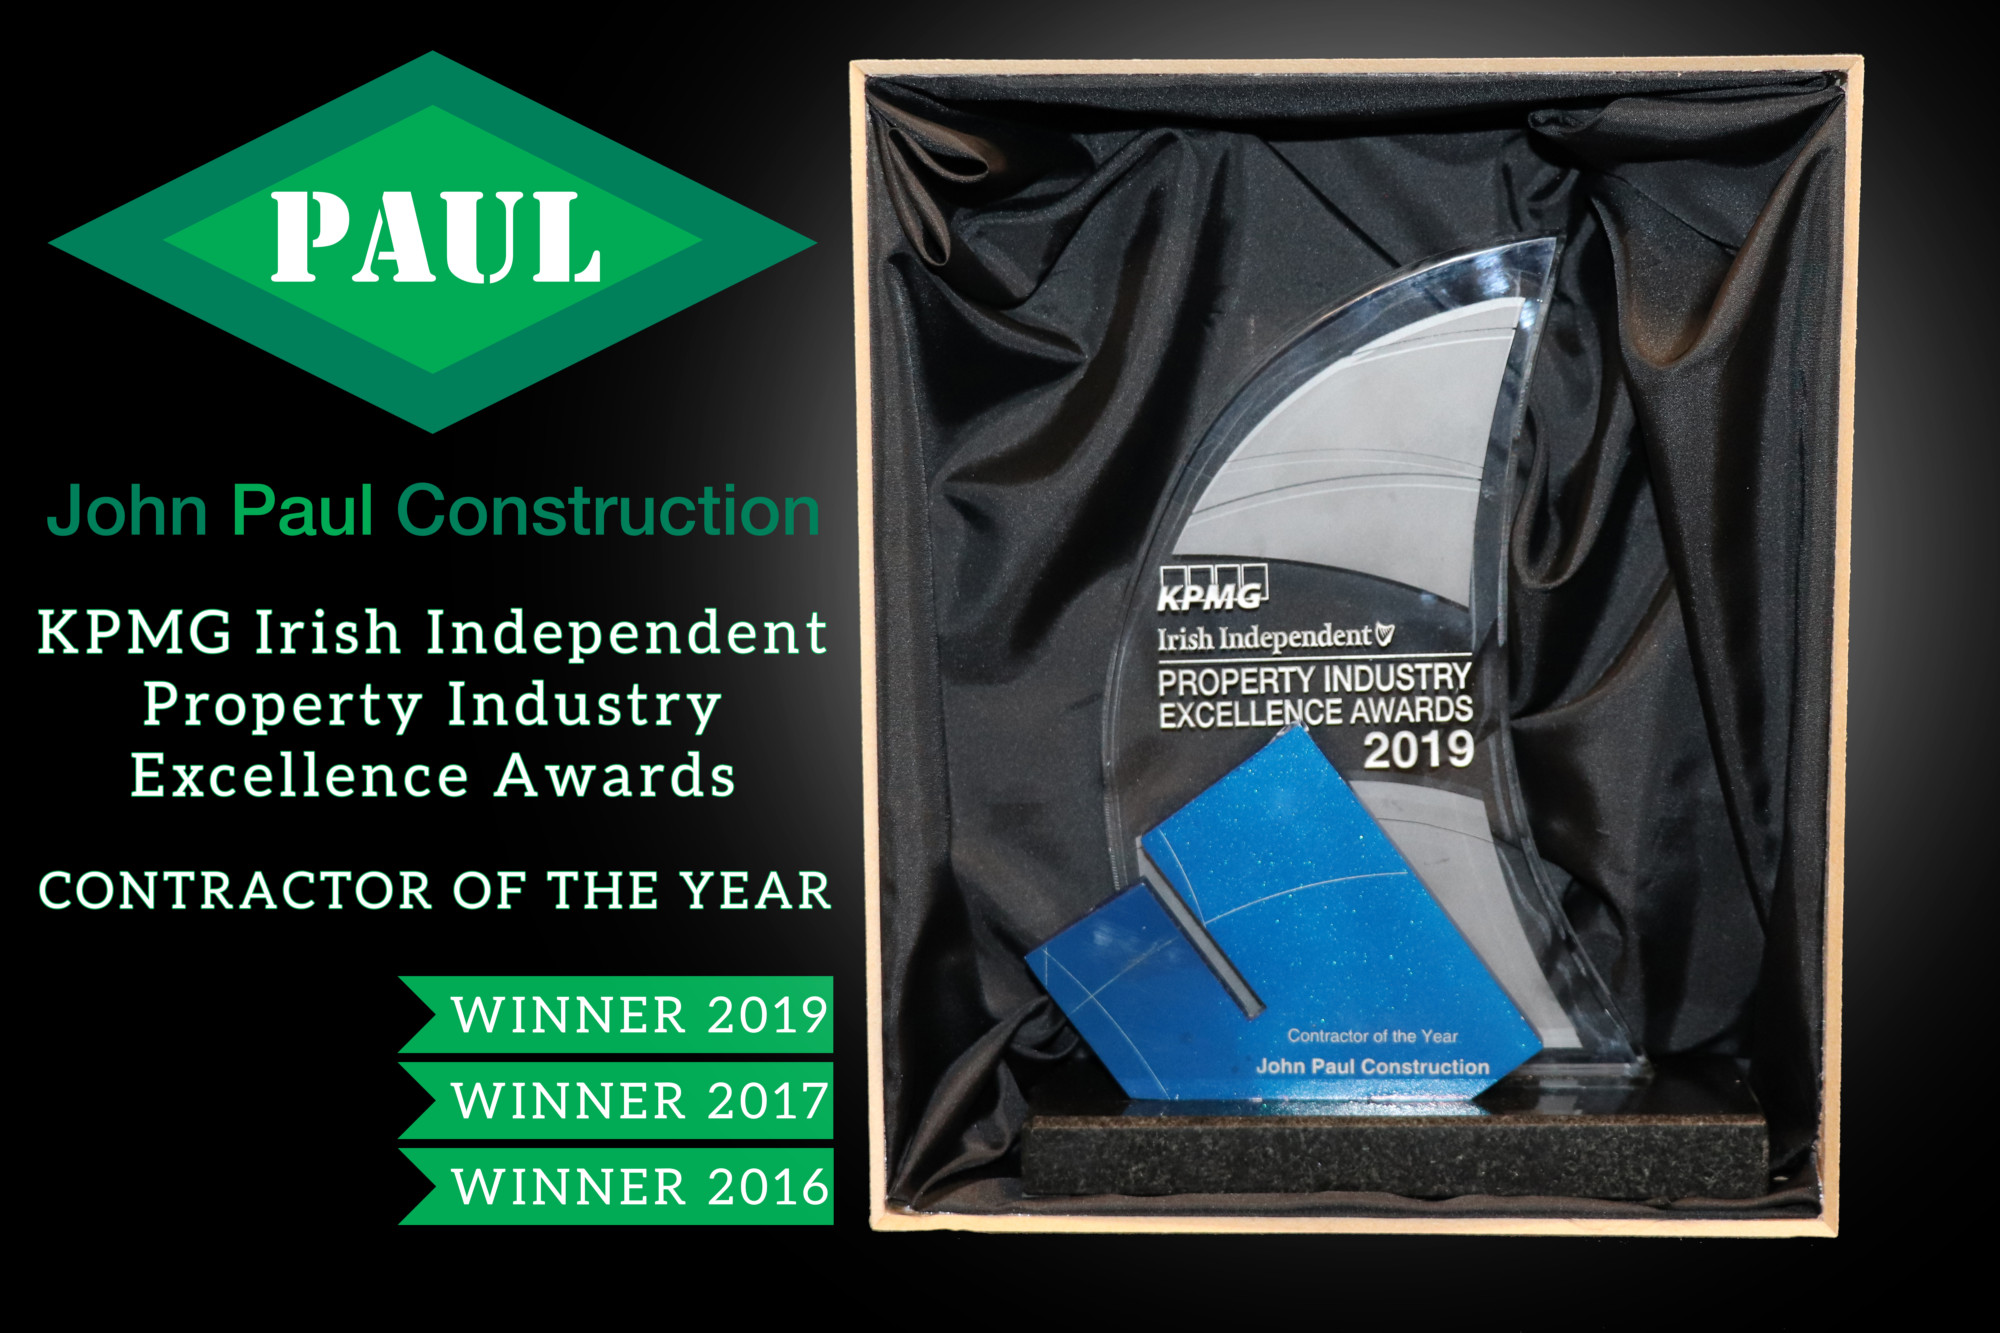 KPMG Irish Independent Property Industry Excellence Awards - Contractor of the Year 2019